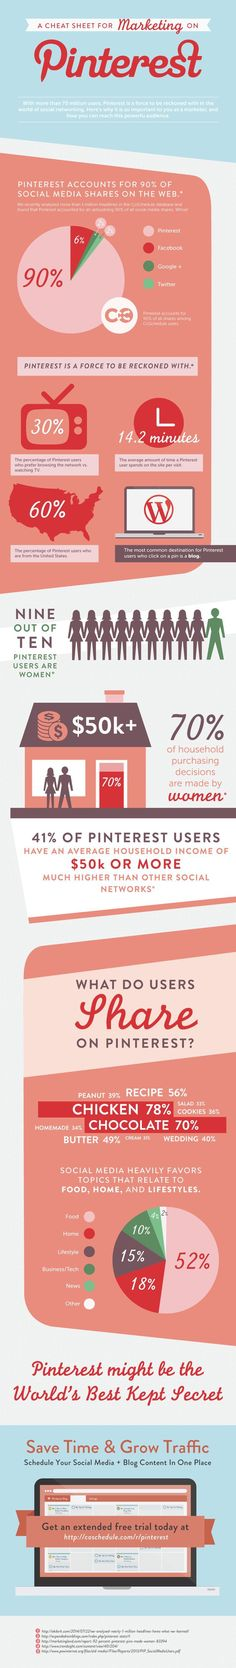 A Cheat Sheet For Marketing On Pinterest [Infographic] | via @borntobesocial